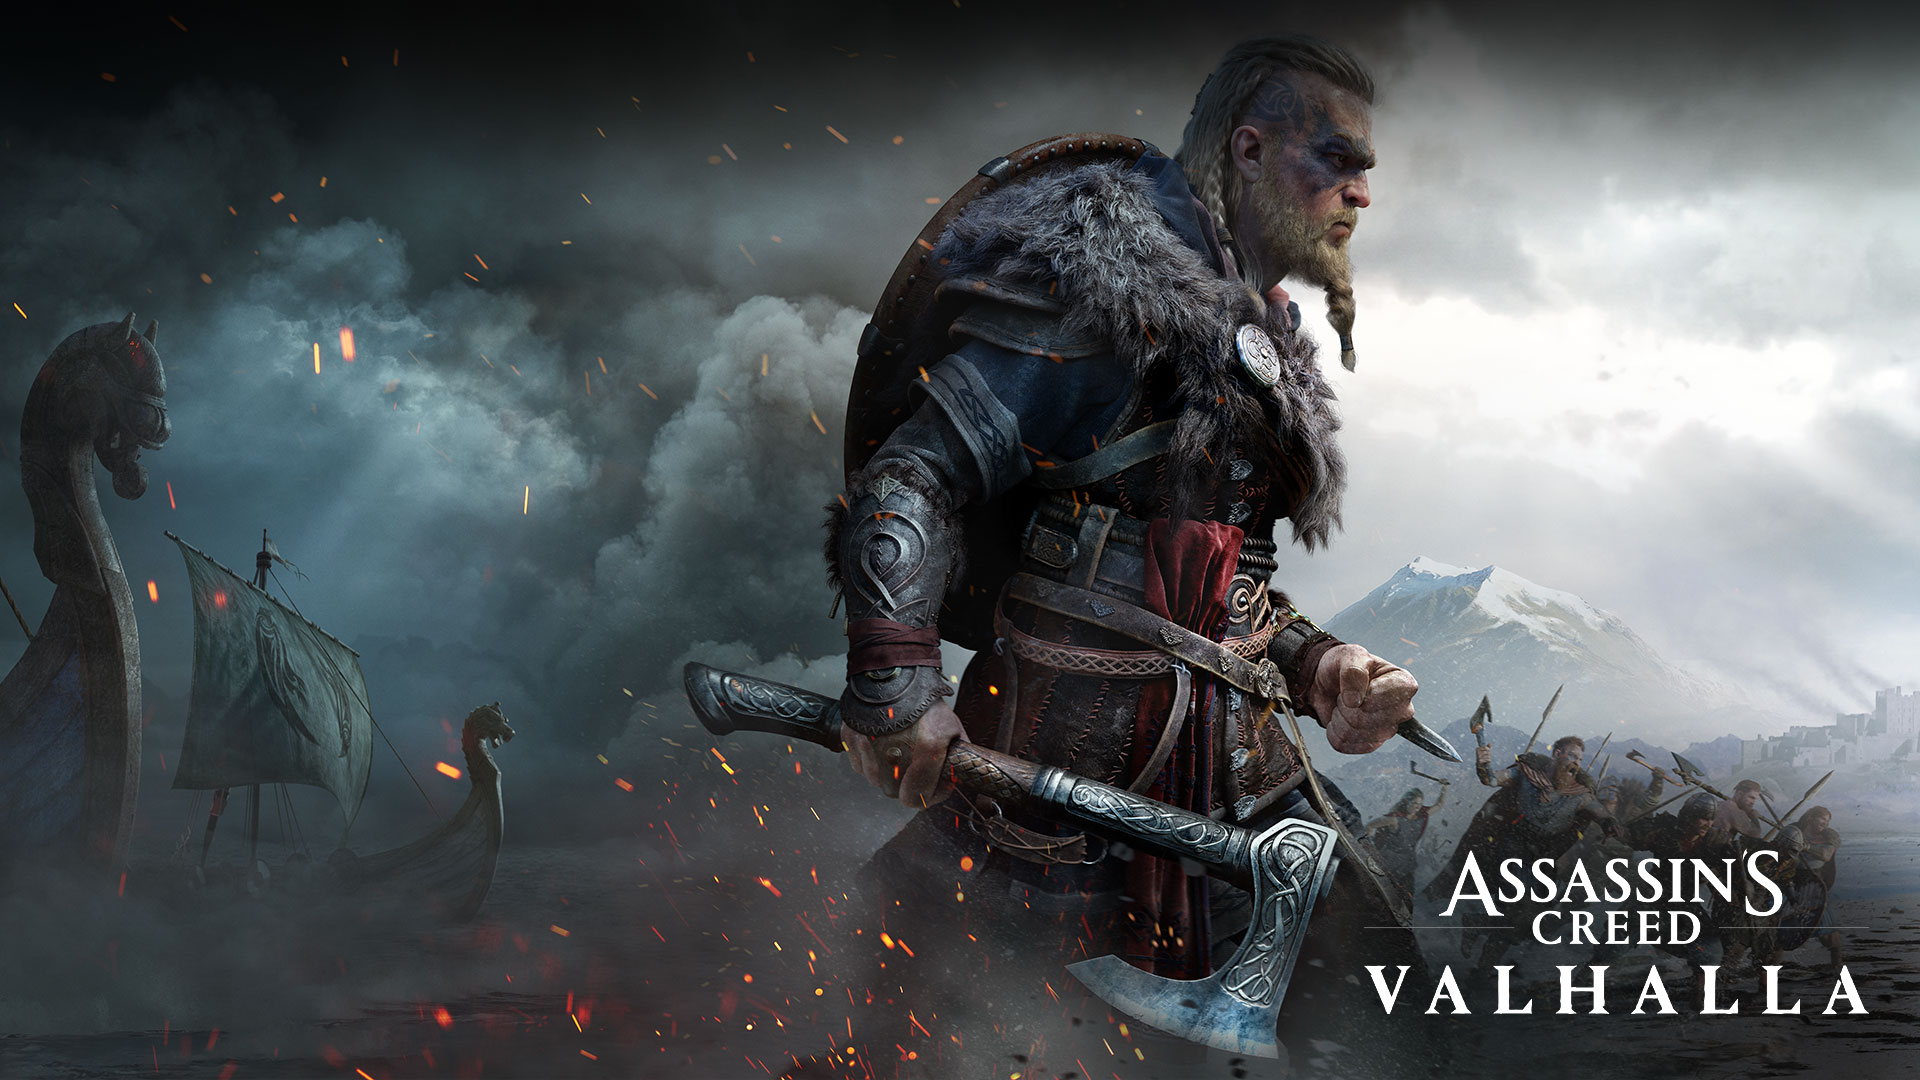 Assassin's Creed Valhalla, character with an axe, ships in the fog, and a battle